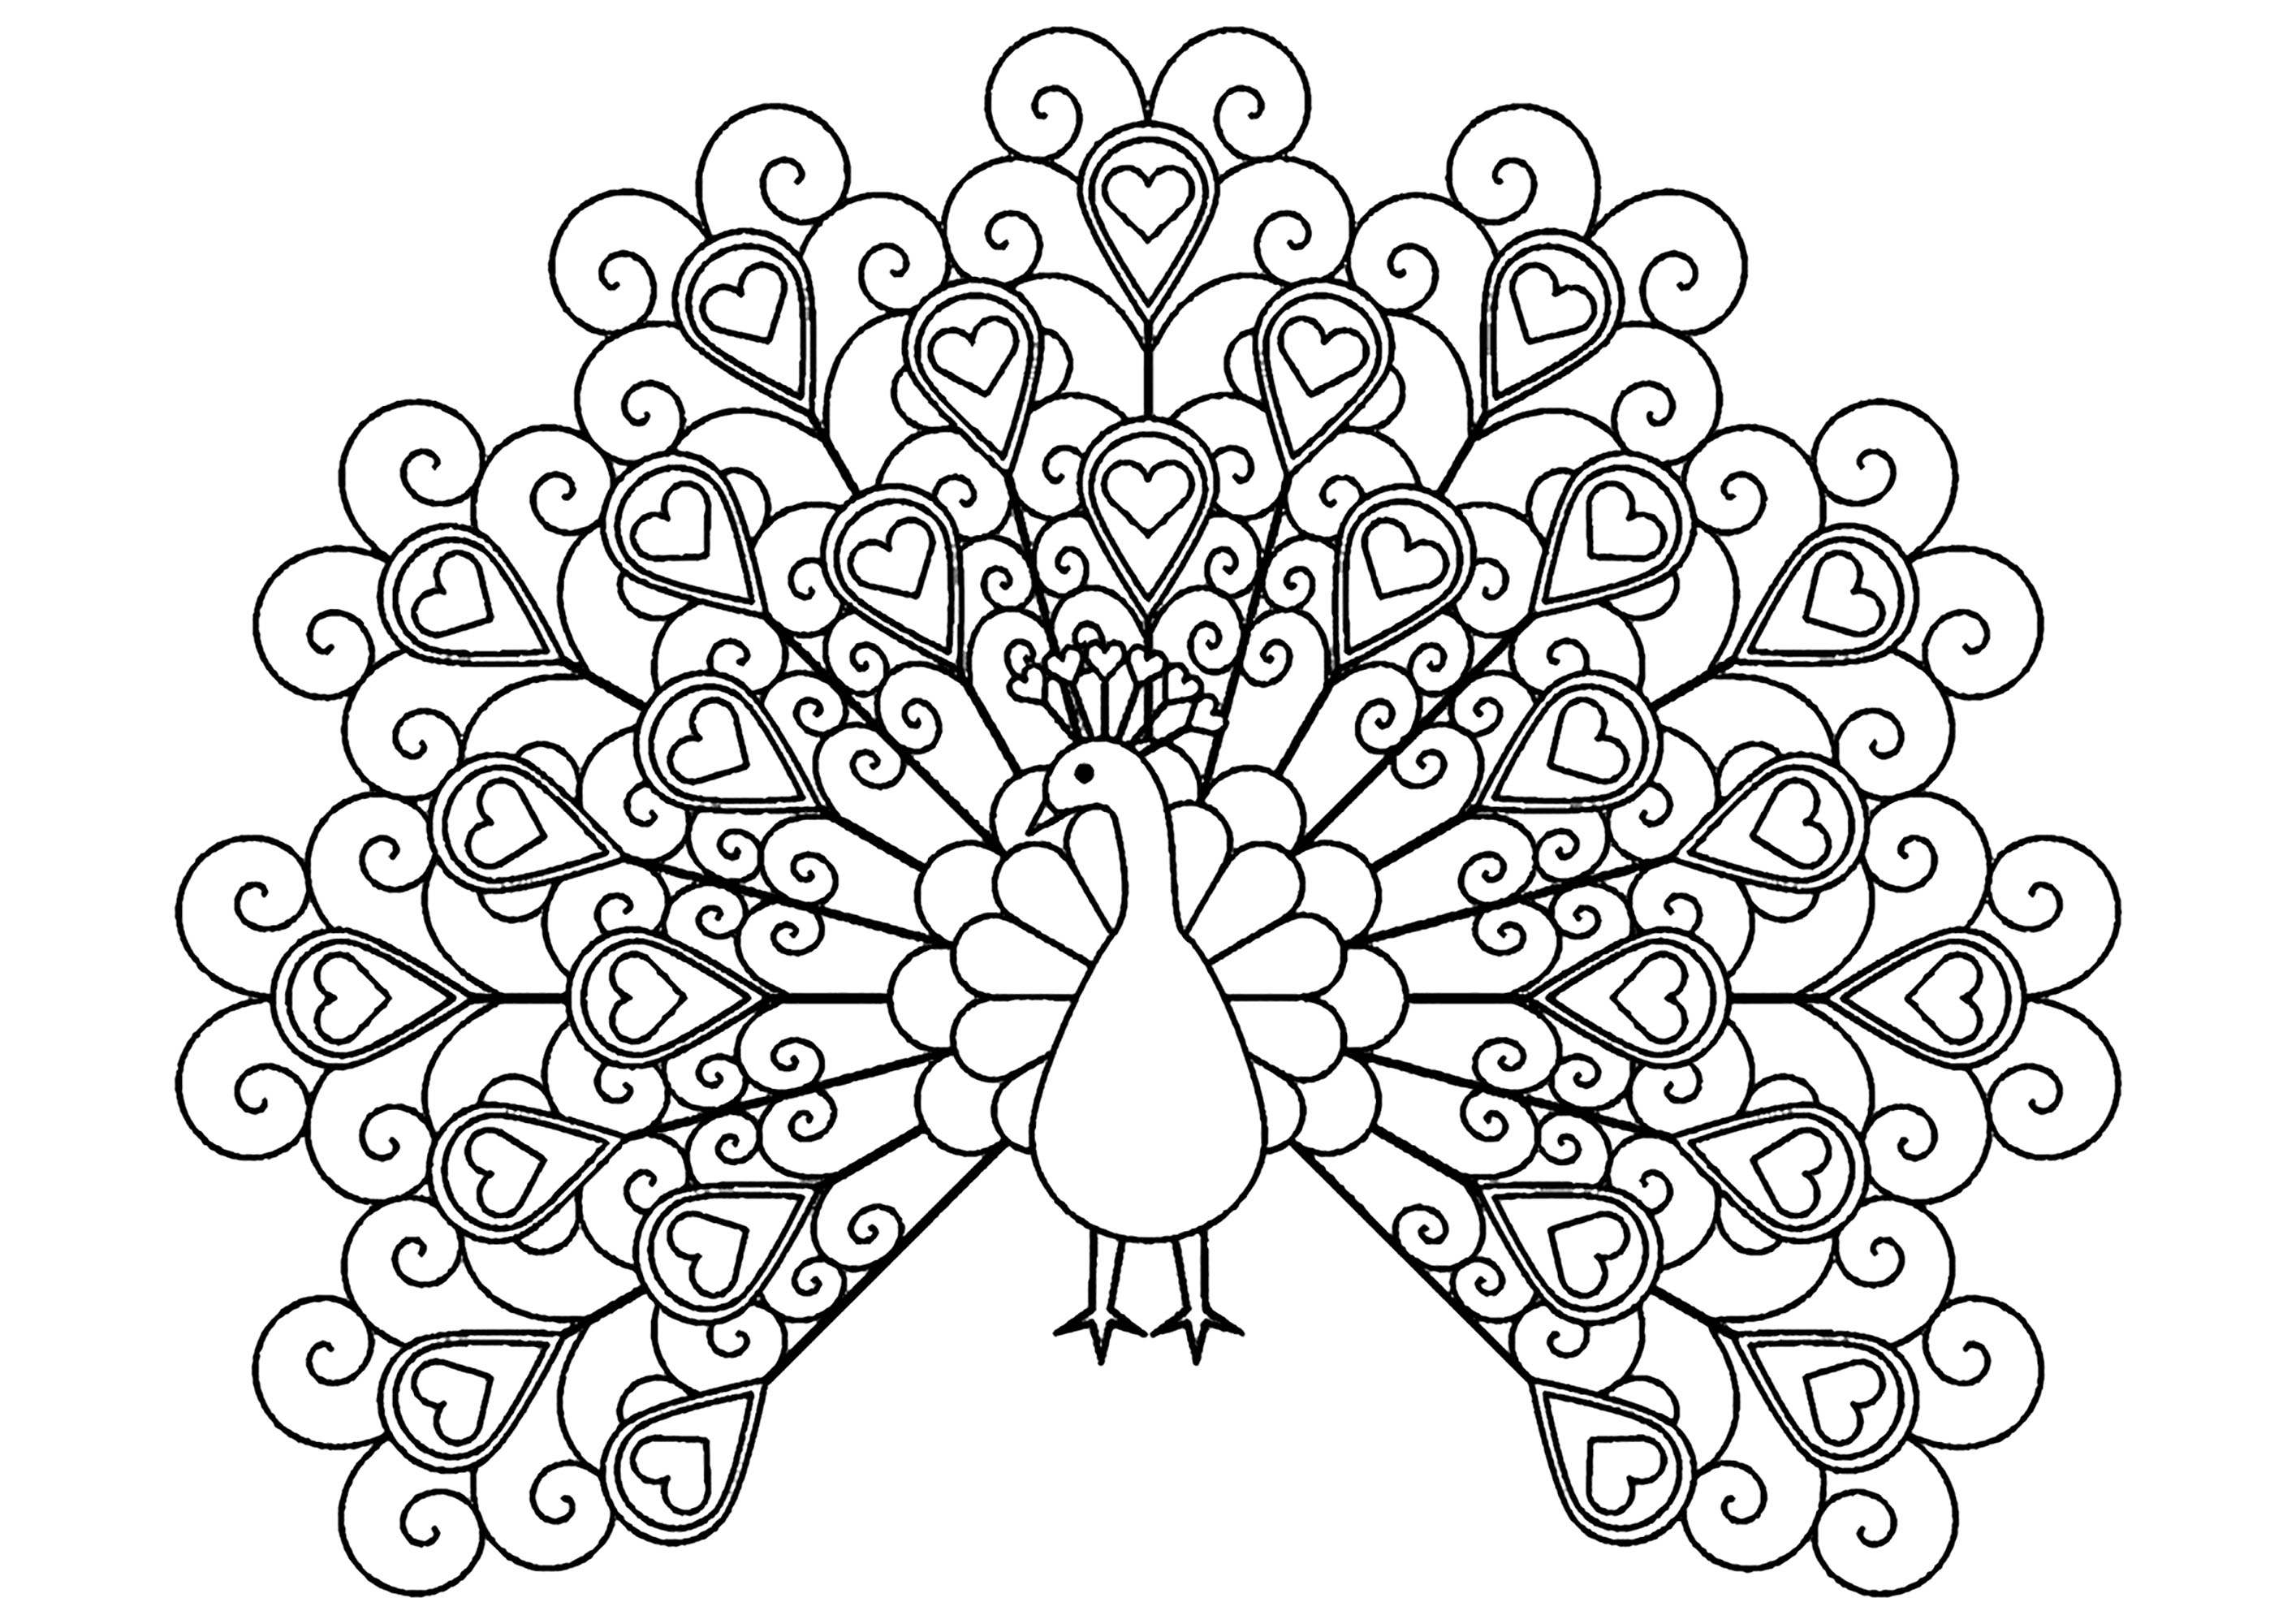 coloring page simple hedgehogs free printable coloring and activity page for page simple coloring